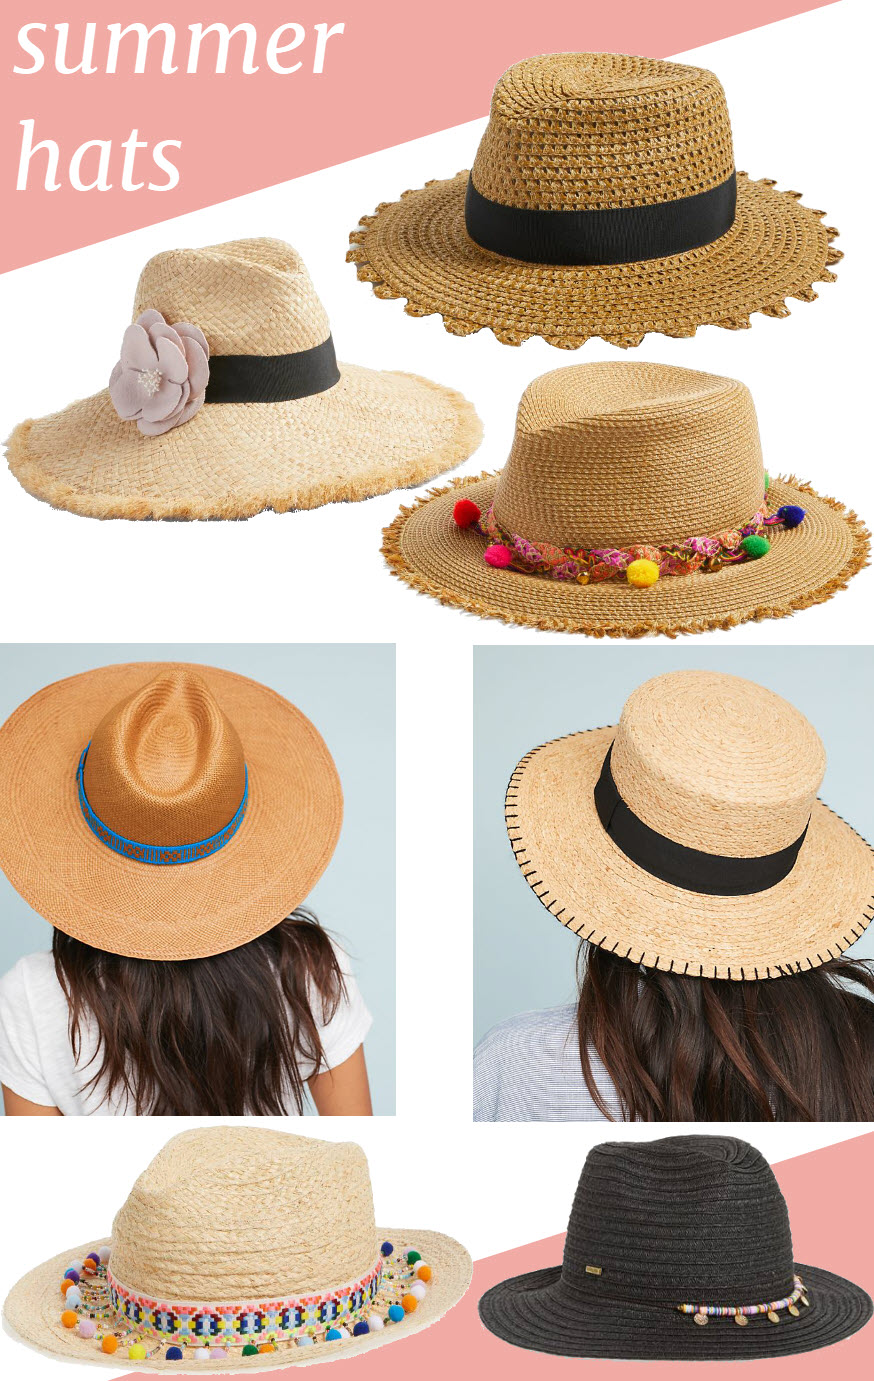 Summer Straw Hats for Women. WEar it with jean shorts or a sundress, these perfect summer accessories are the most versatile item in your closet this summer! #fashionblog #fashion #summer #summerstyle